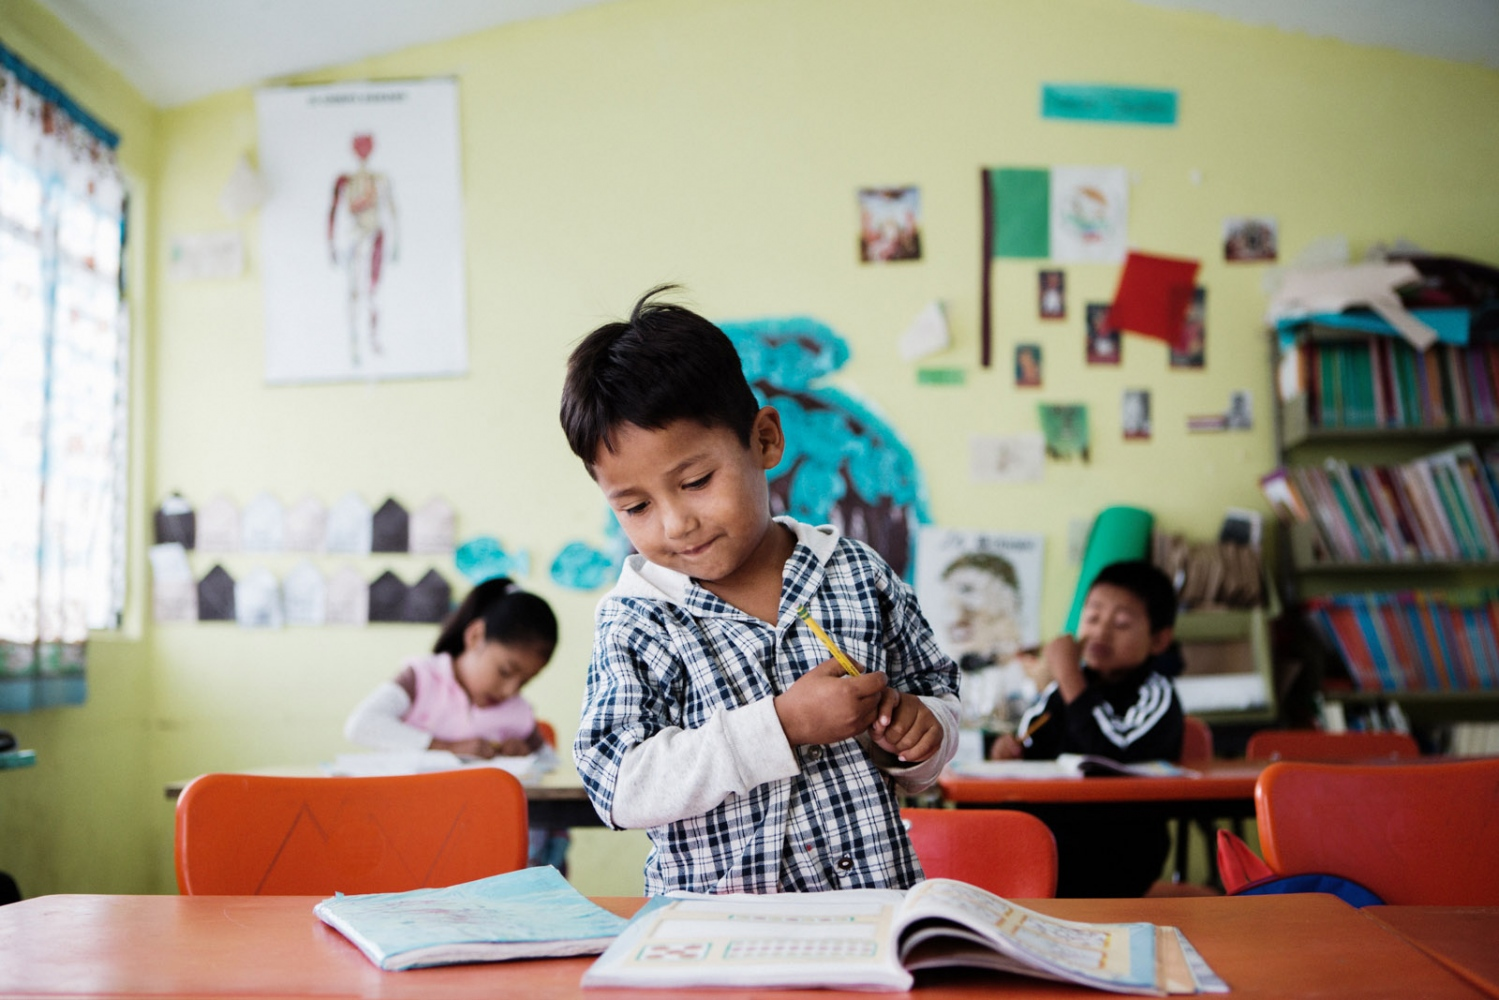 Work commissioned by Unicef Mexico